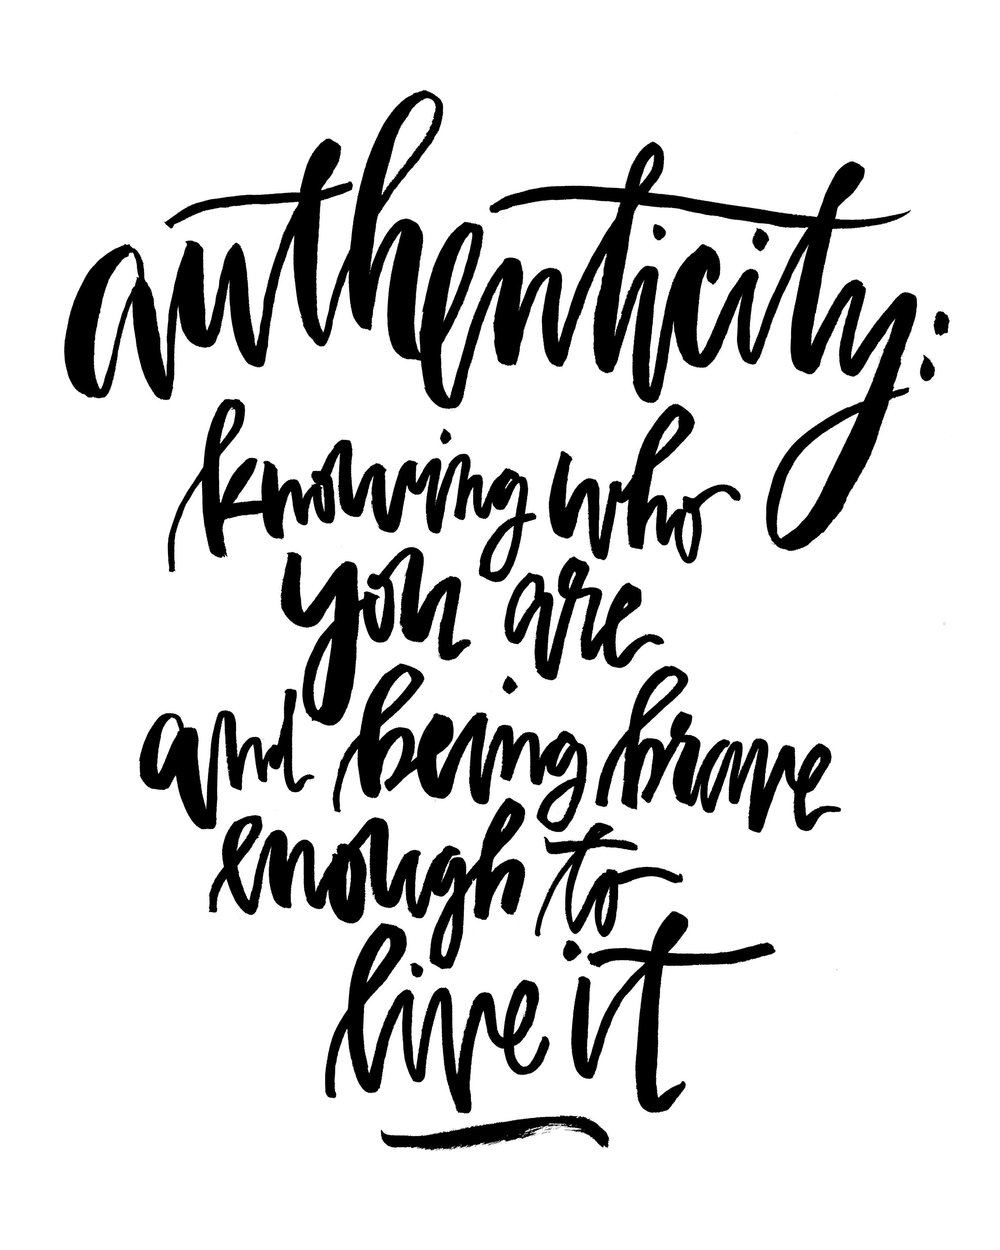 Authenticity Printable.jpg